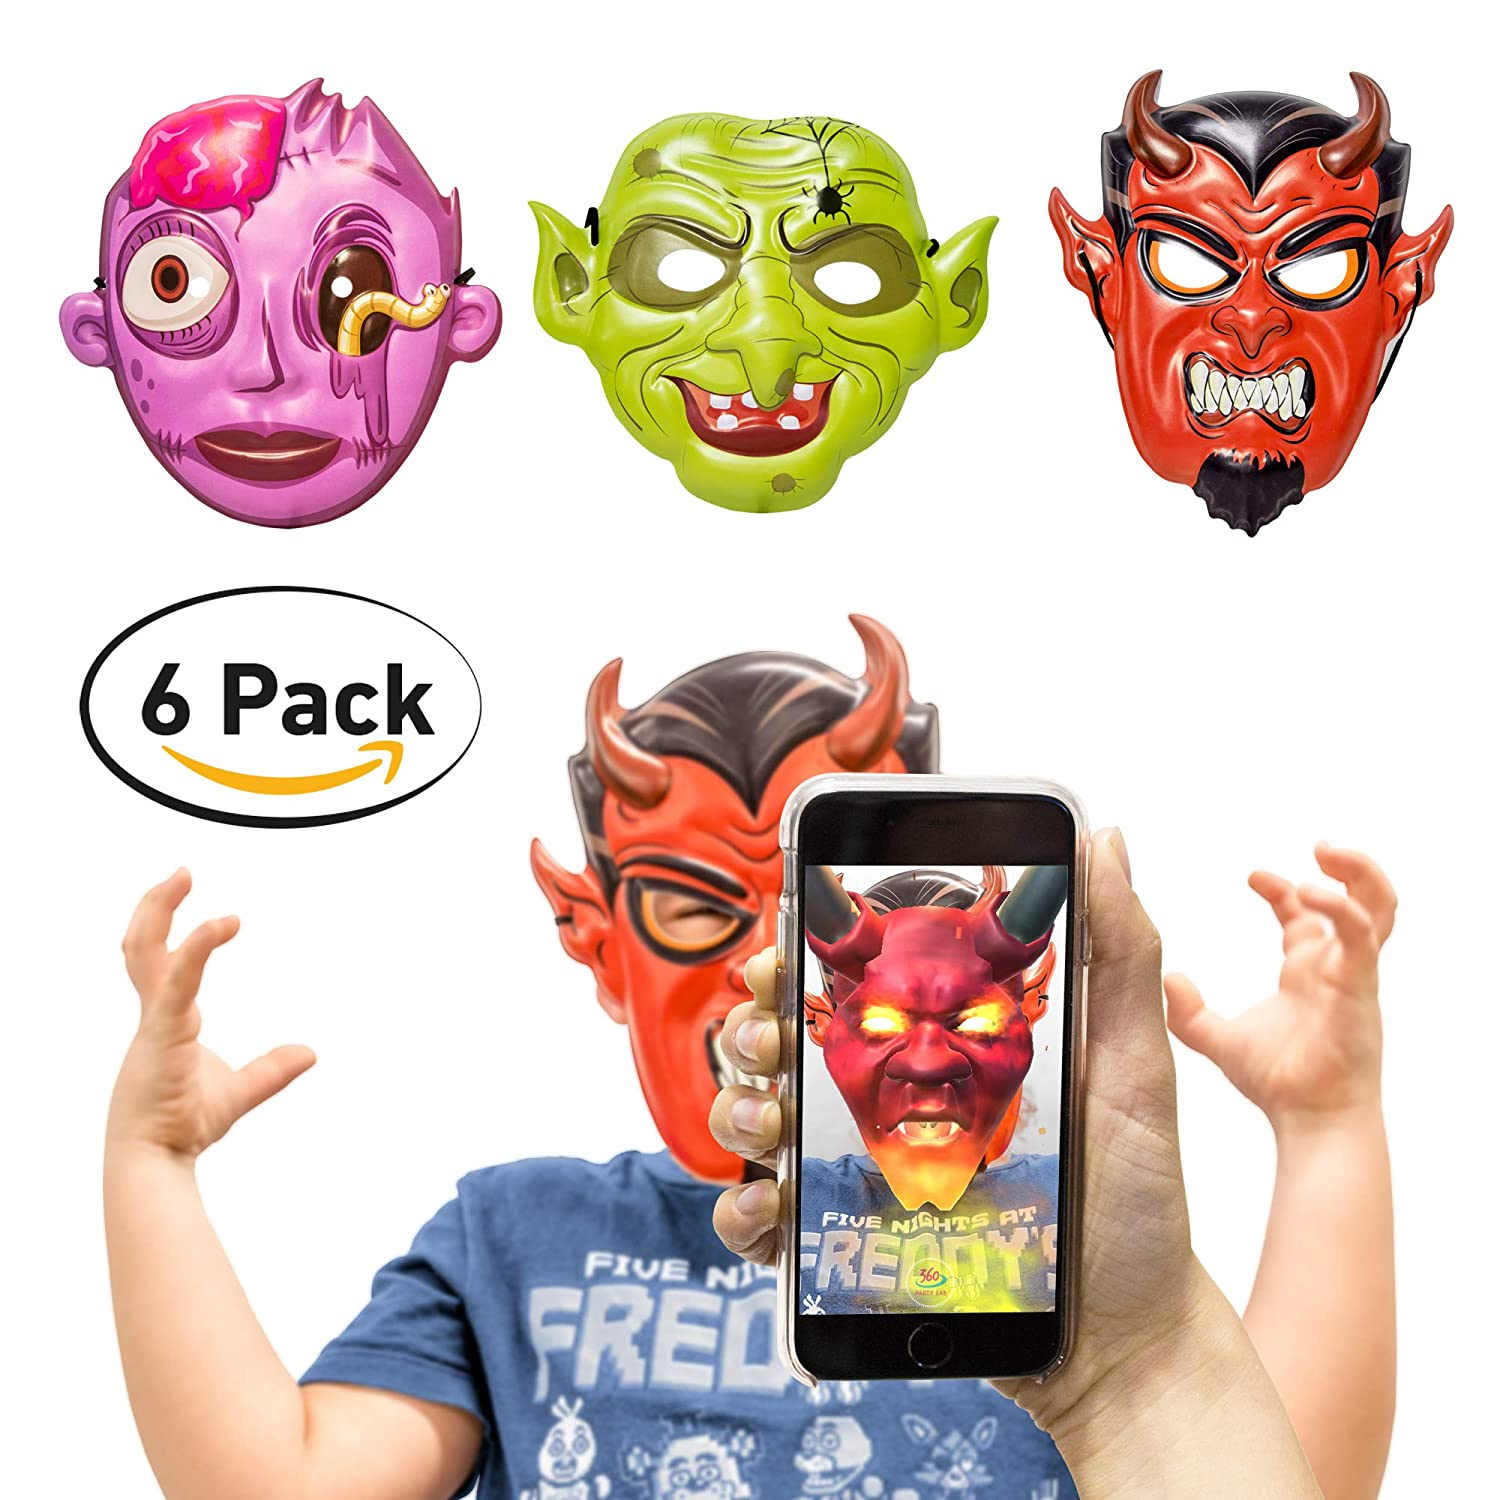 360 Party Lab Kids Scary Halloween Masks Augmented Reality 6 Pack 2 Devil 2 Witch 2 Zoombie